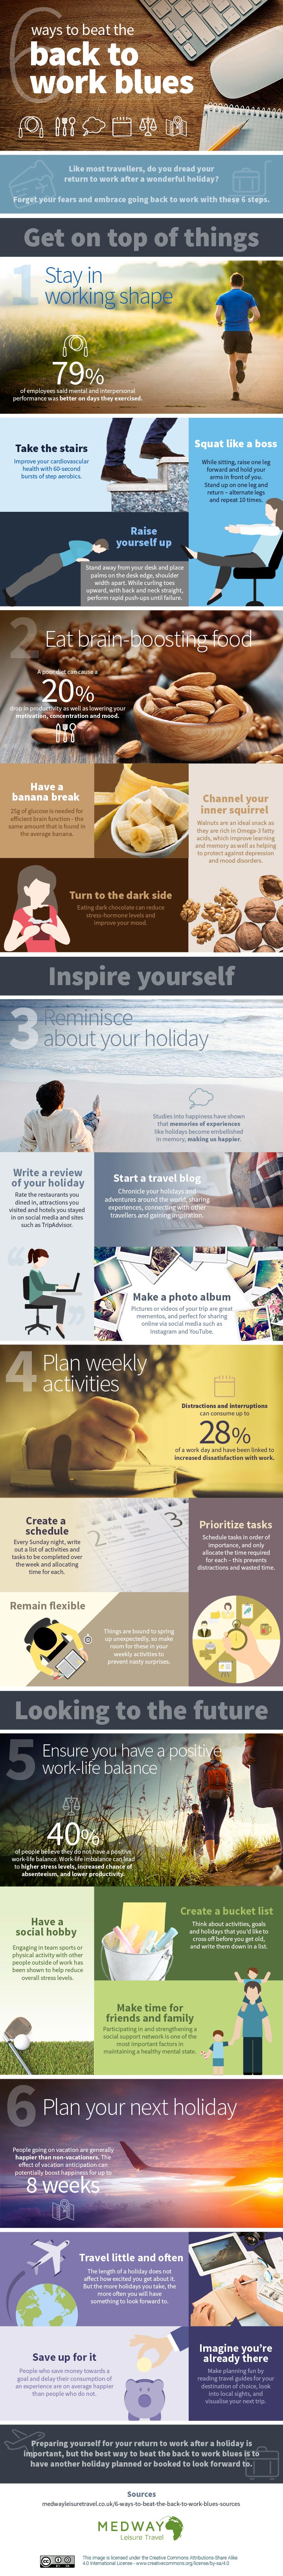 6-ways-to-beat-the-back-to-work-blues